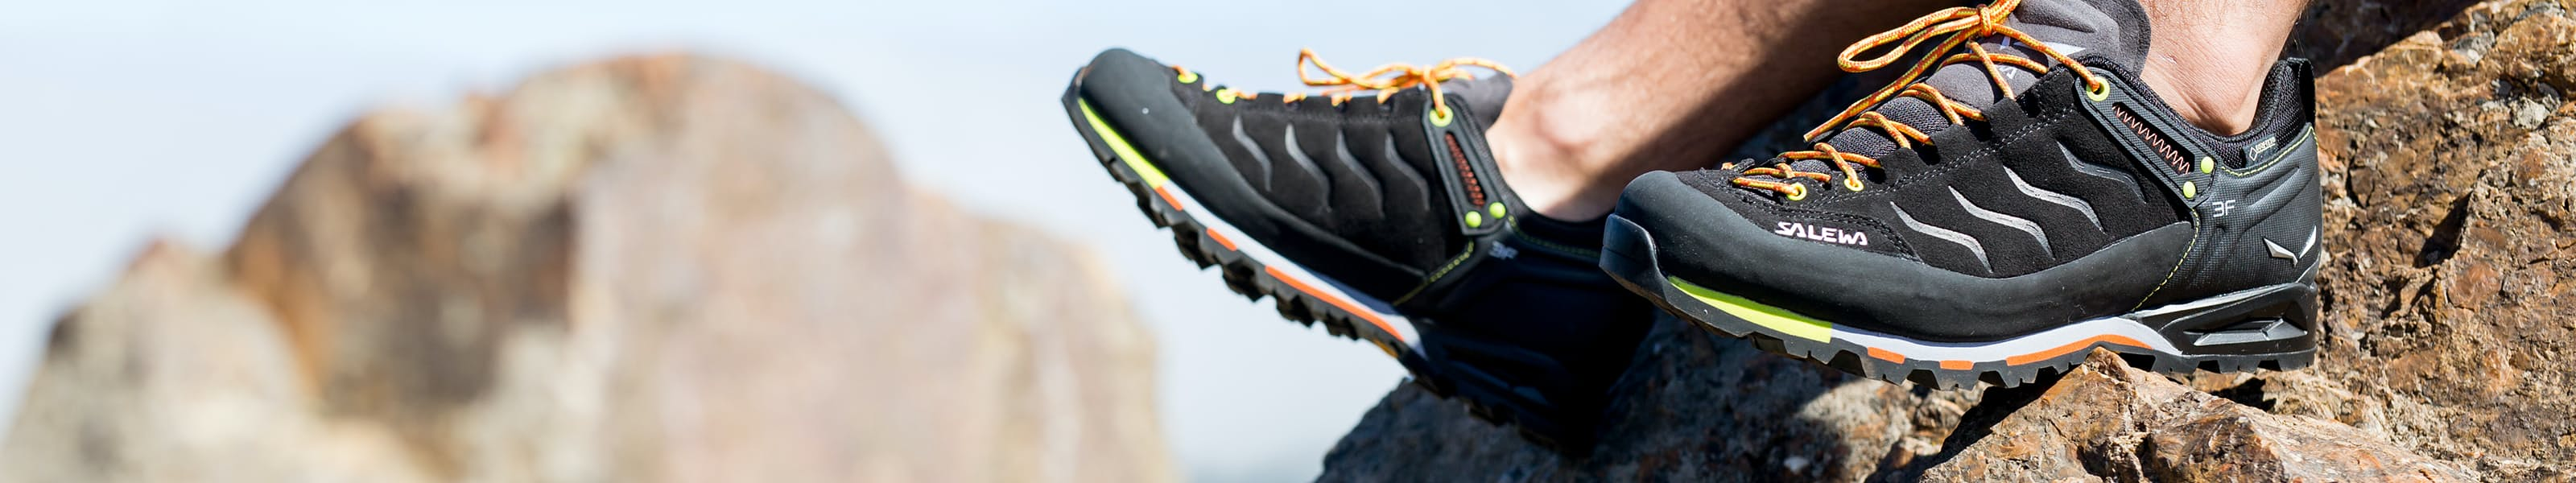 Salewa header 1807 02.jpg?ixlib=rails 2.1